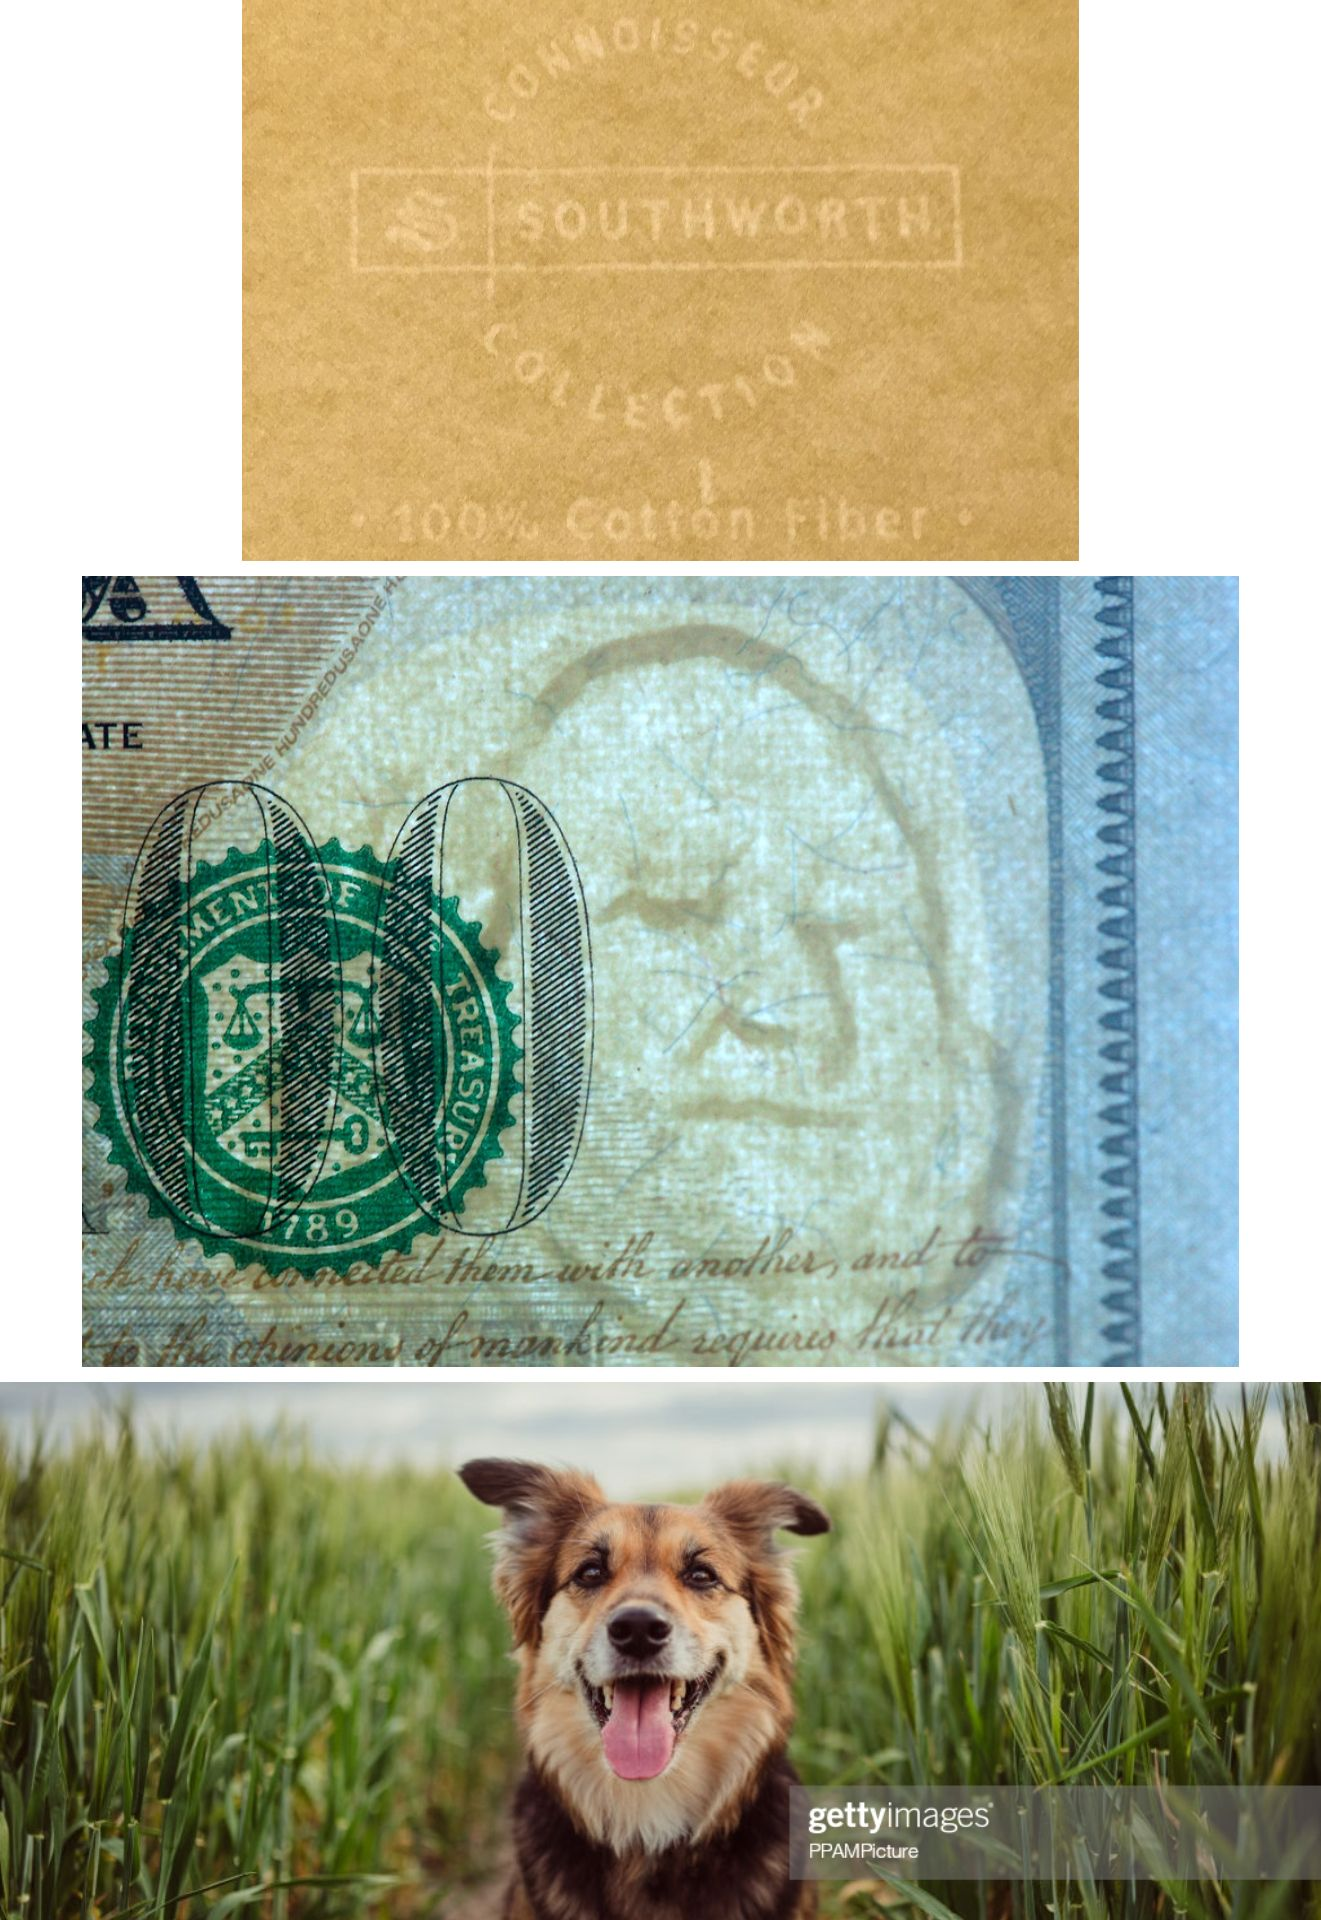 Examples of 3 different types of watermark: one on stationery, one on money, and one on a stock photo.